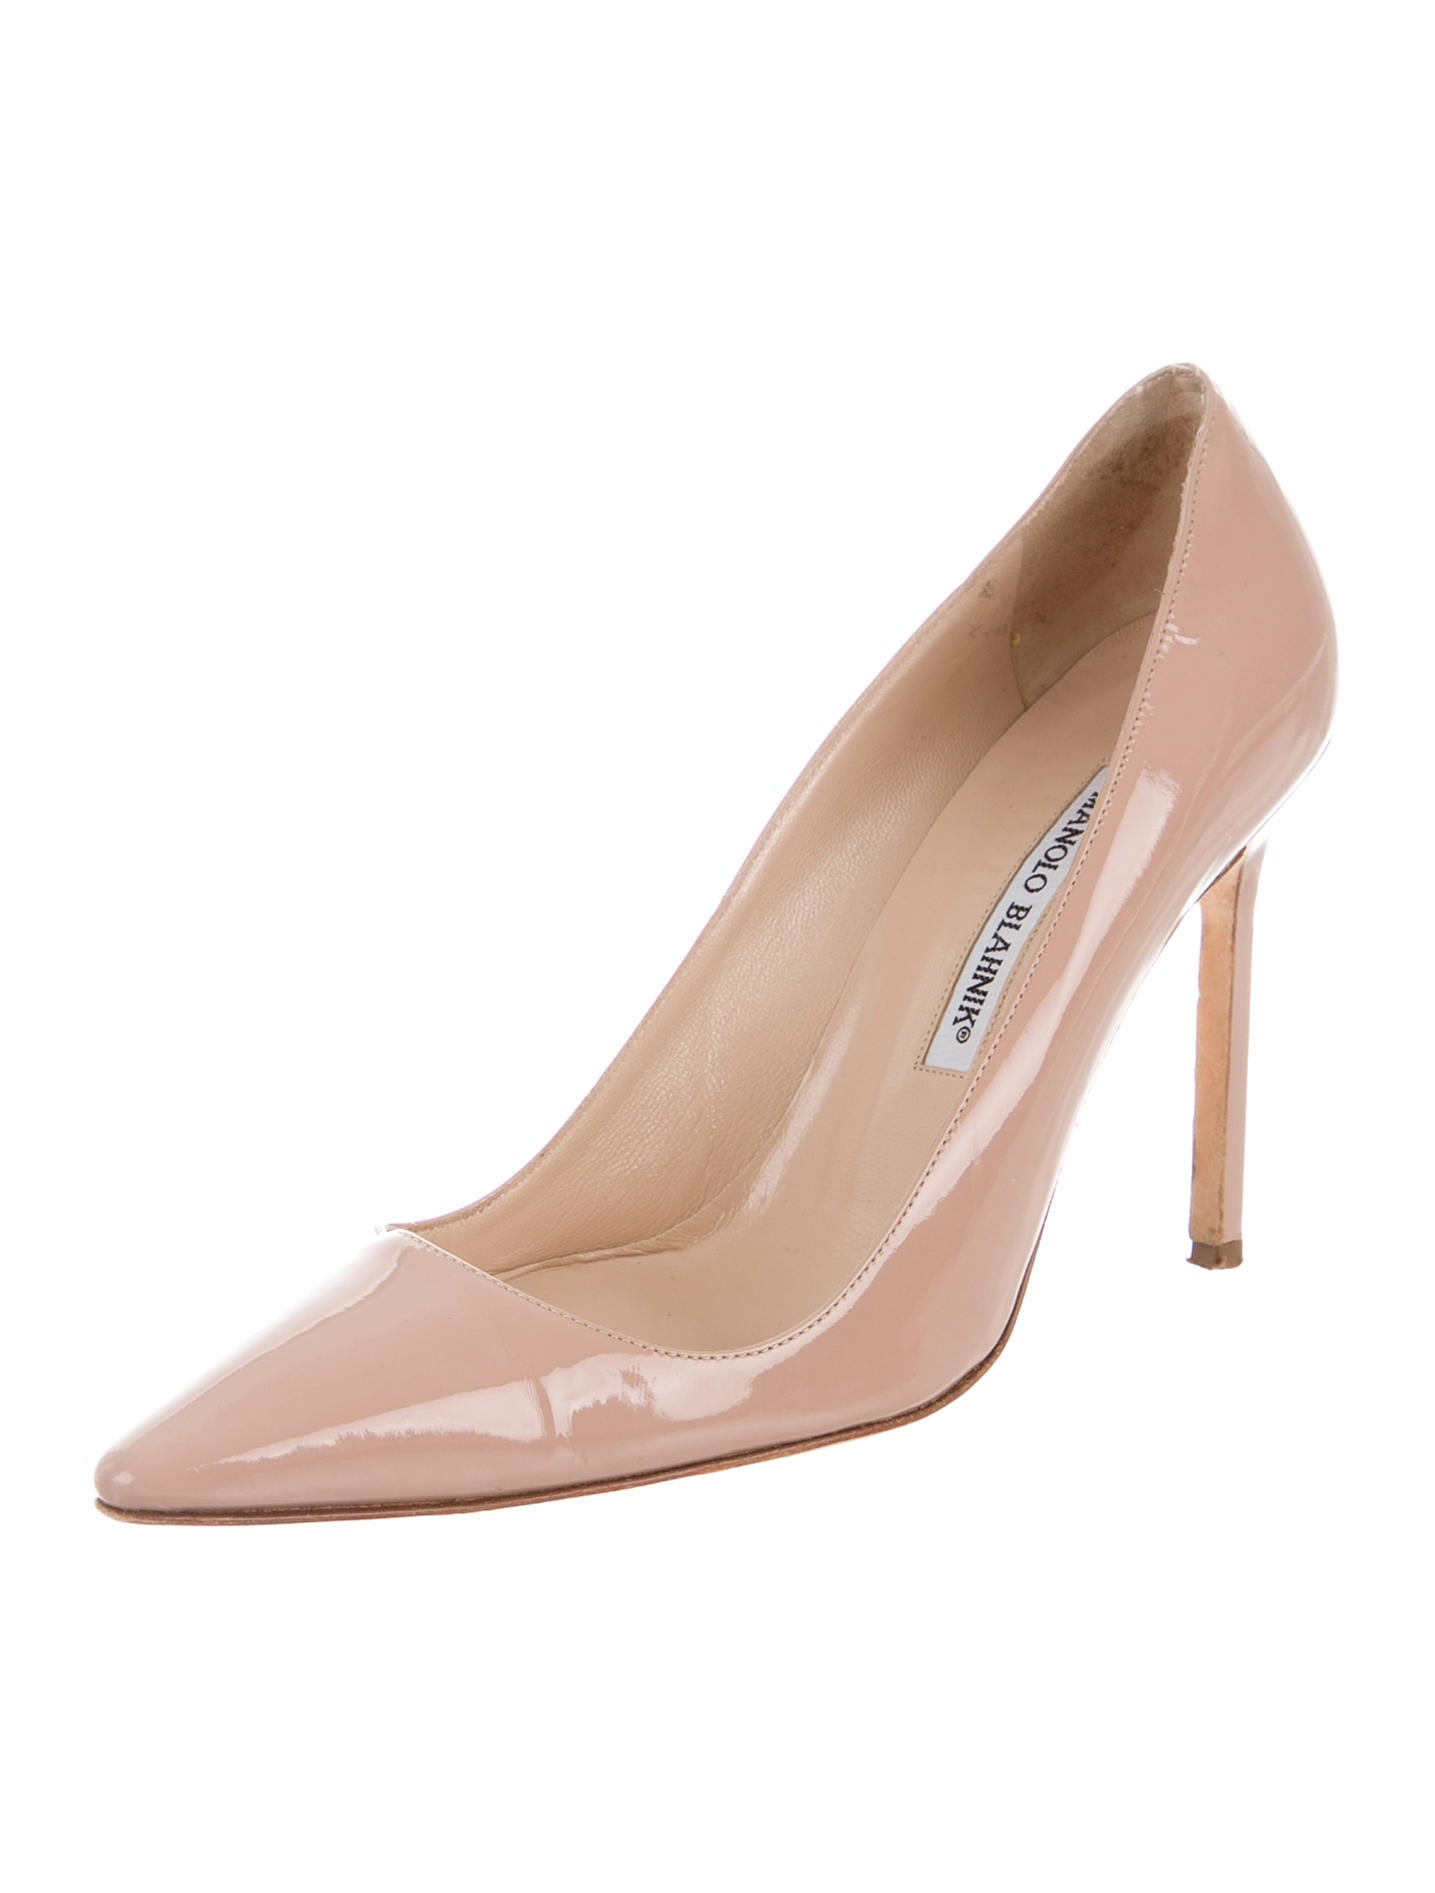 Manolo blahnik patent bb pumps shoes moo61144 the for Shoes by manolo blahnik